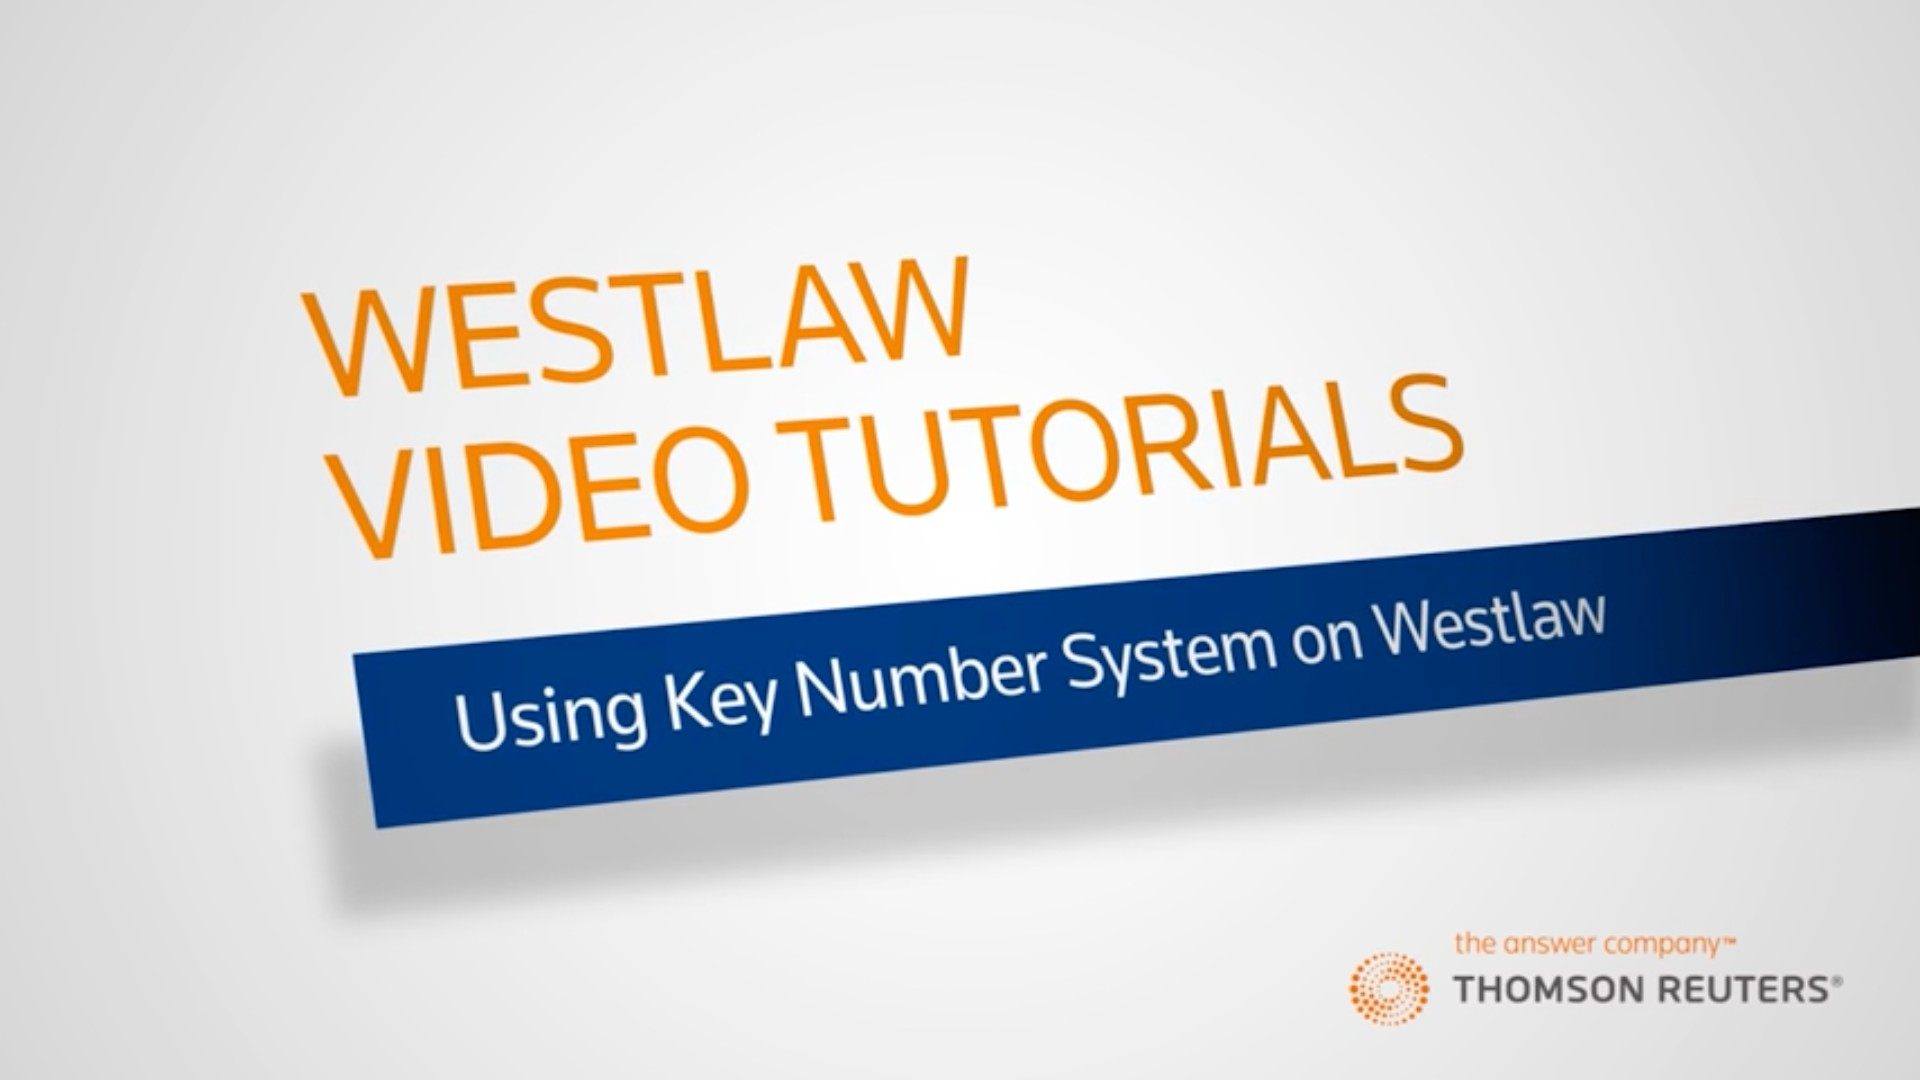 Using the Key Number System on Westlaw